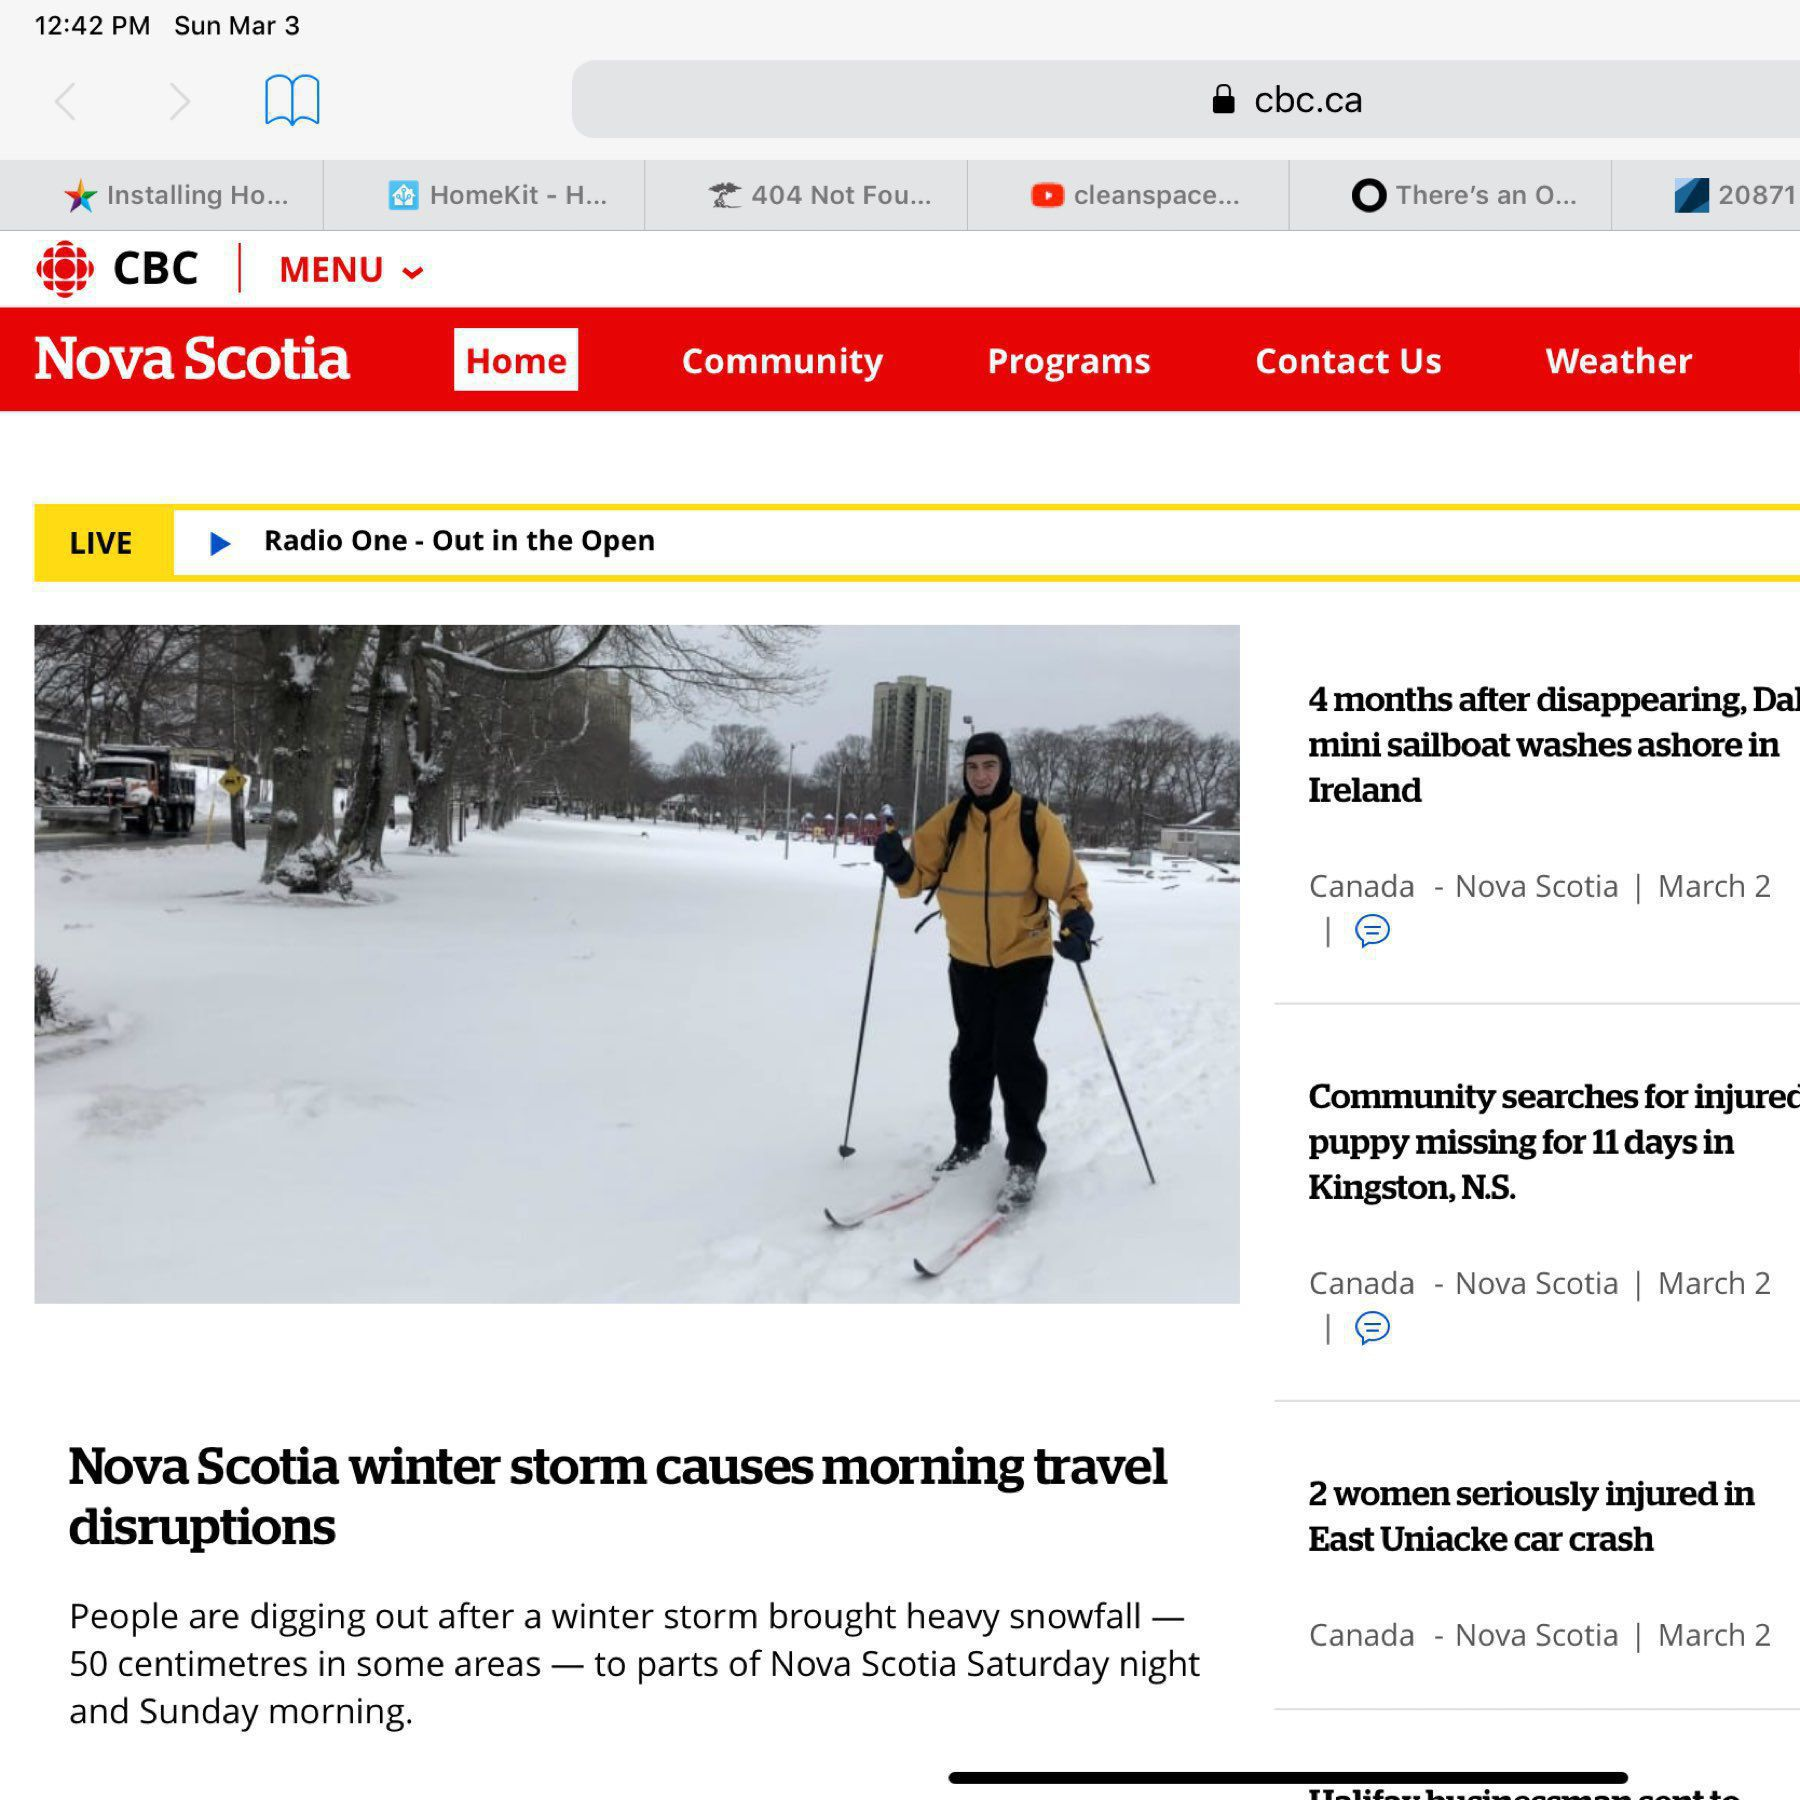 A picture of me cross-country skiing of the front page of the CBC news website.